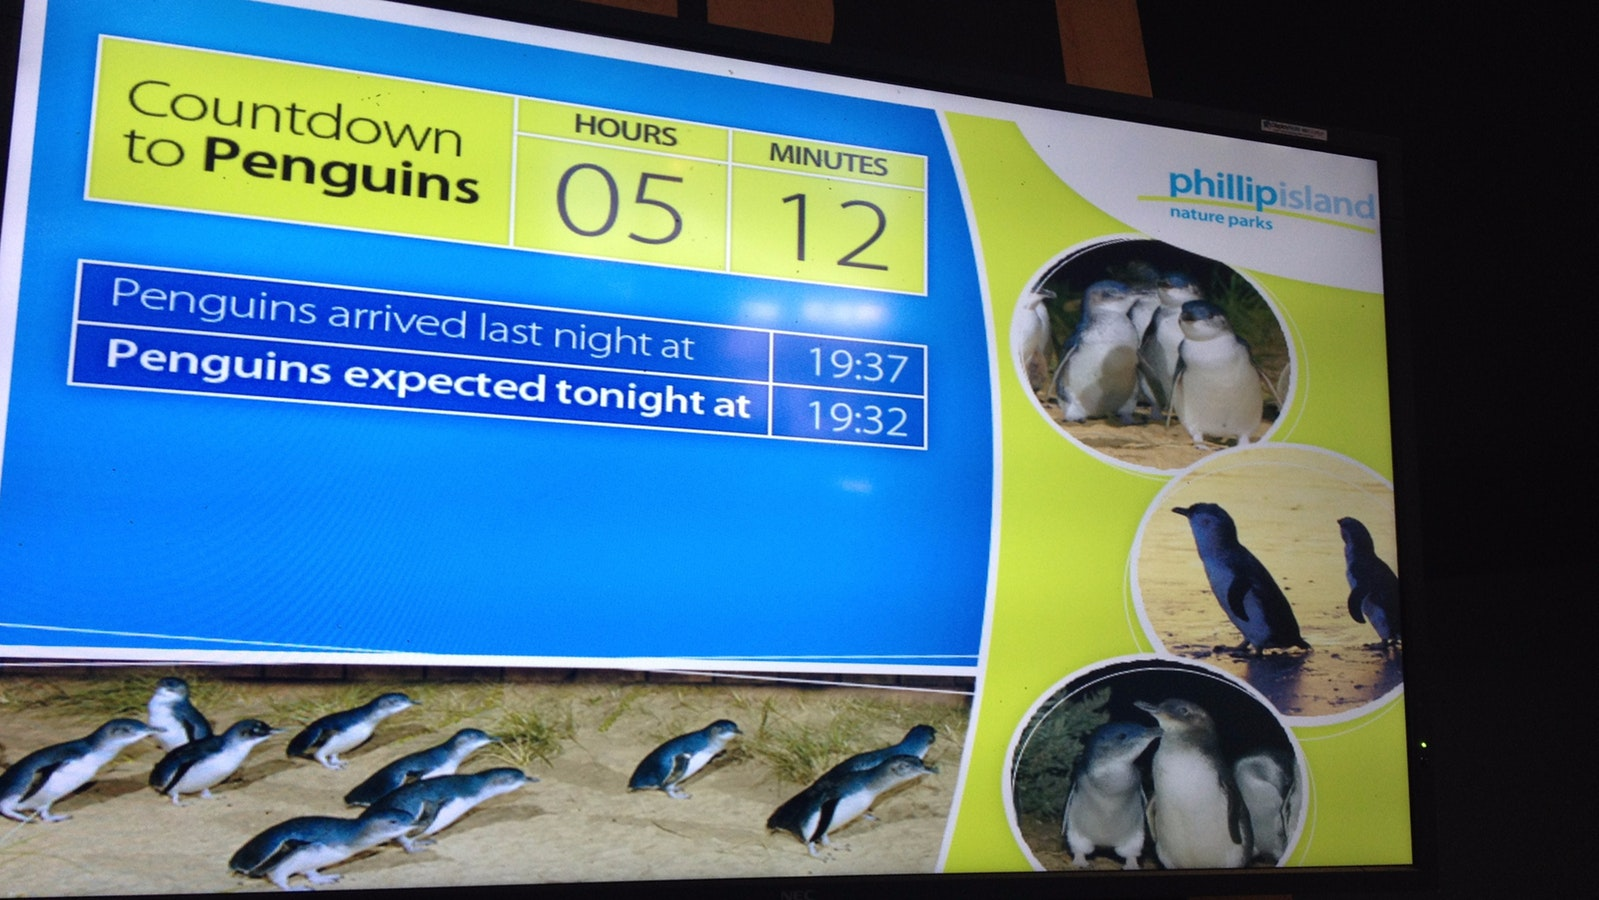 Screen at penguin centre showing countdown to the penguin parade